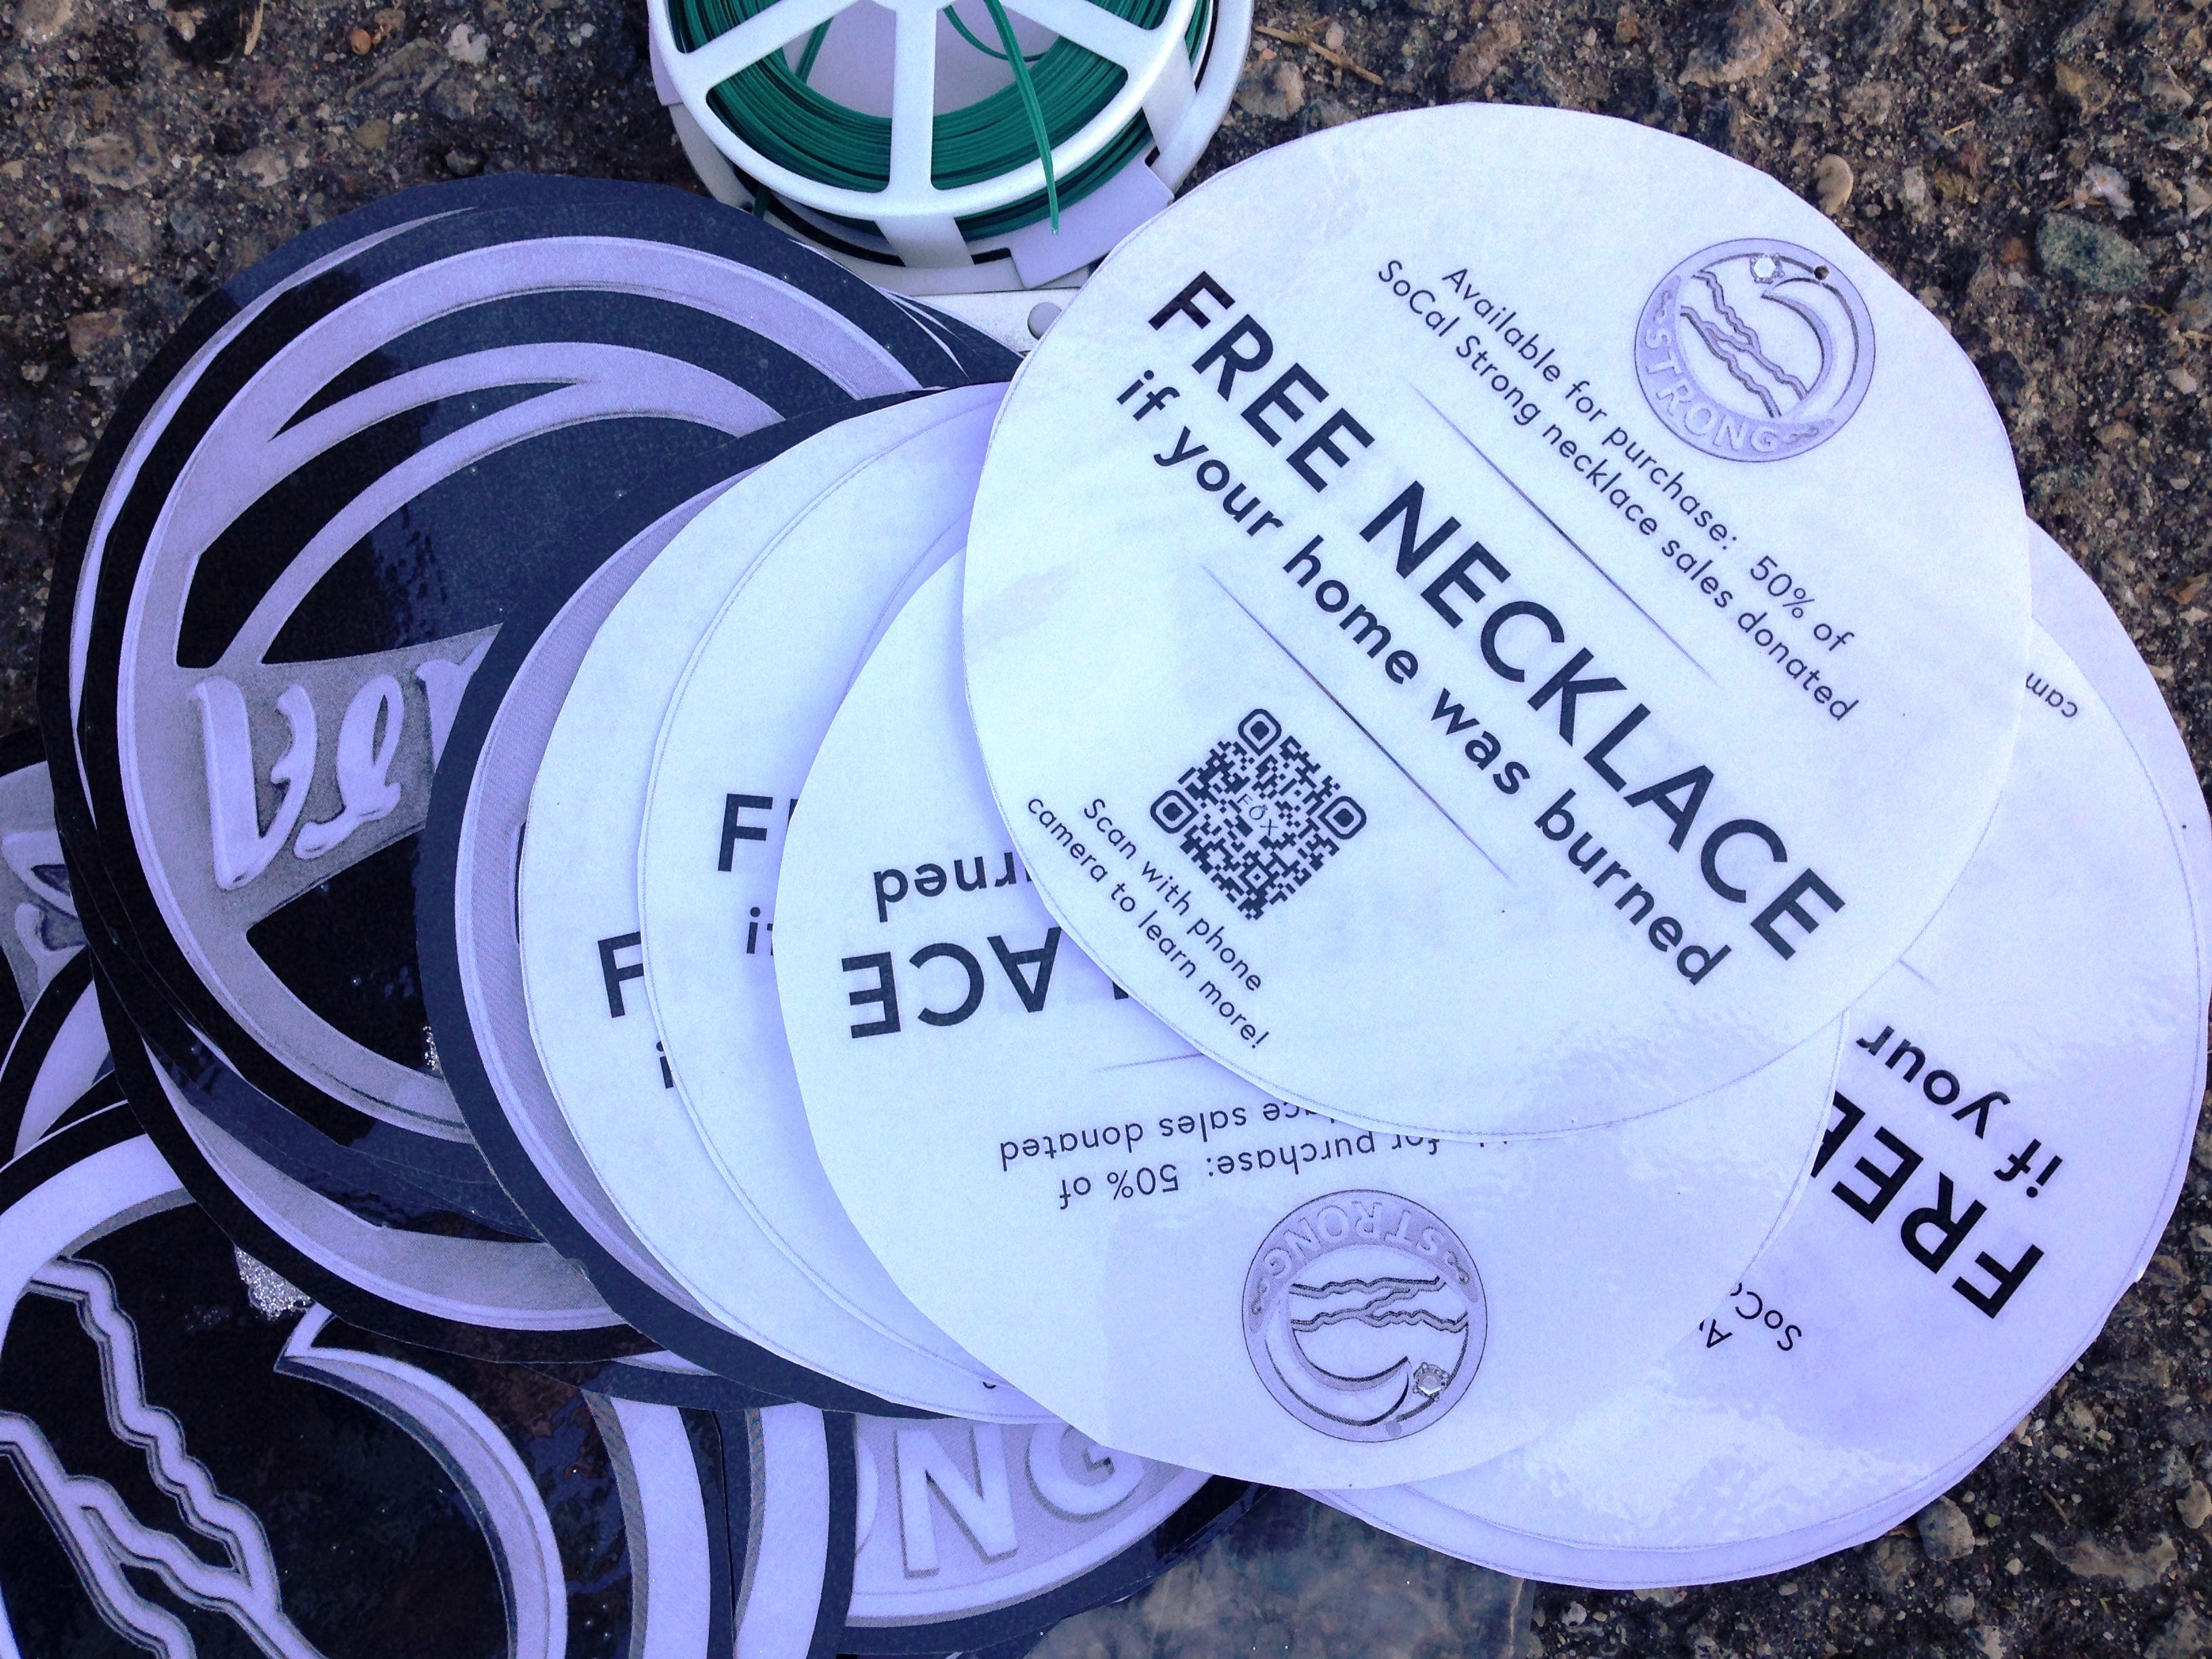 The tree sponsored by Fox Fine Jewelry is decorated with round paper ornaments with a QR code that people can scan for more information about free necklaces being given to those who lost their homes in the recent fires. More than 100 elaborately decorated trees will be on display for Holidays at the Plaza, an event at Plaza Park in Ventura running Dec. 7 through Jan. 2.